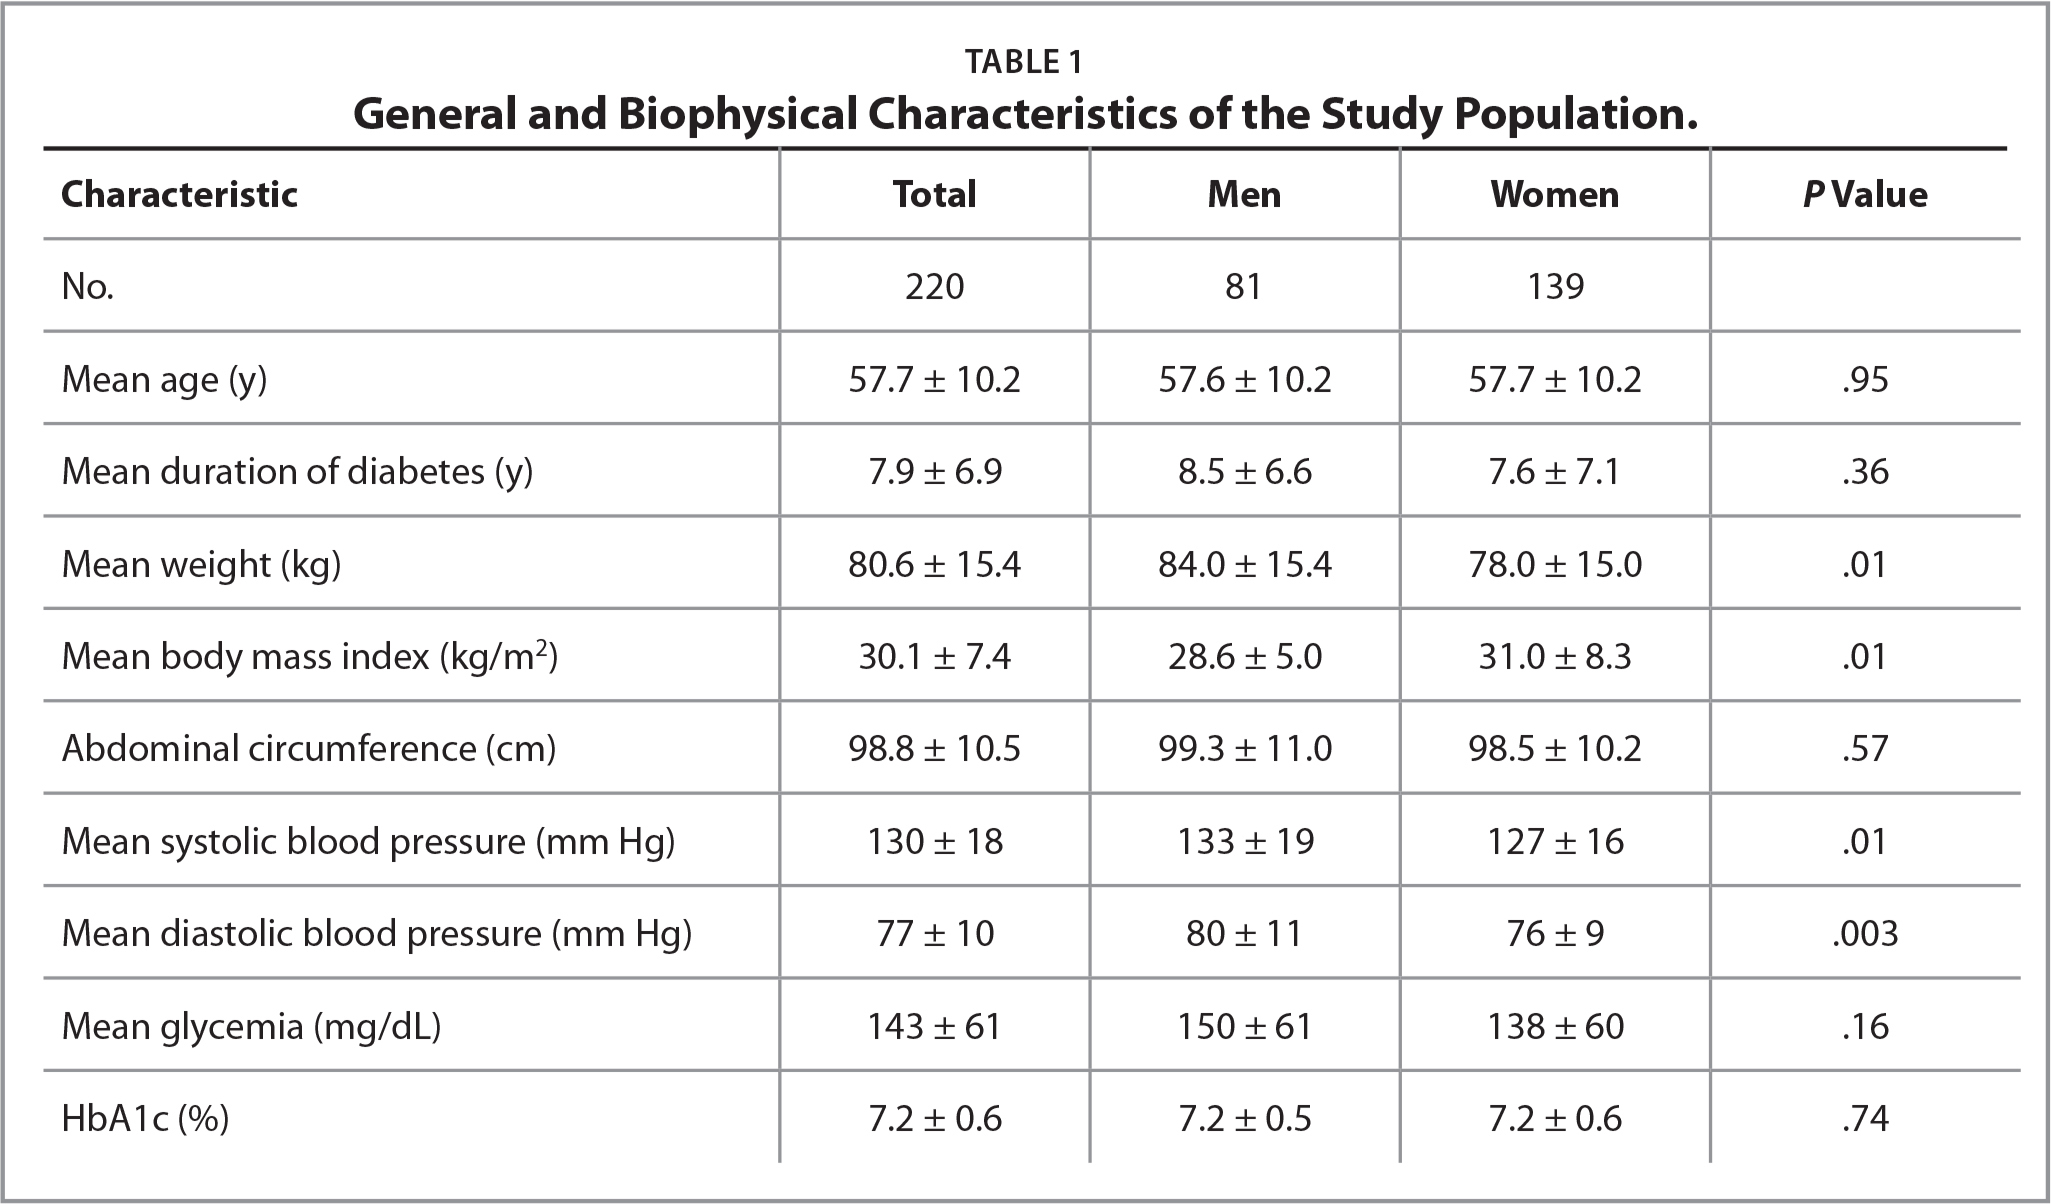 General and Biophysical Characteristics of the Study Population.